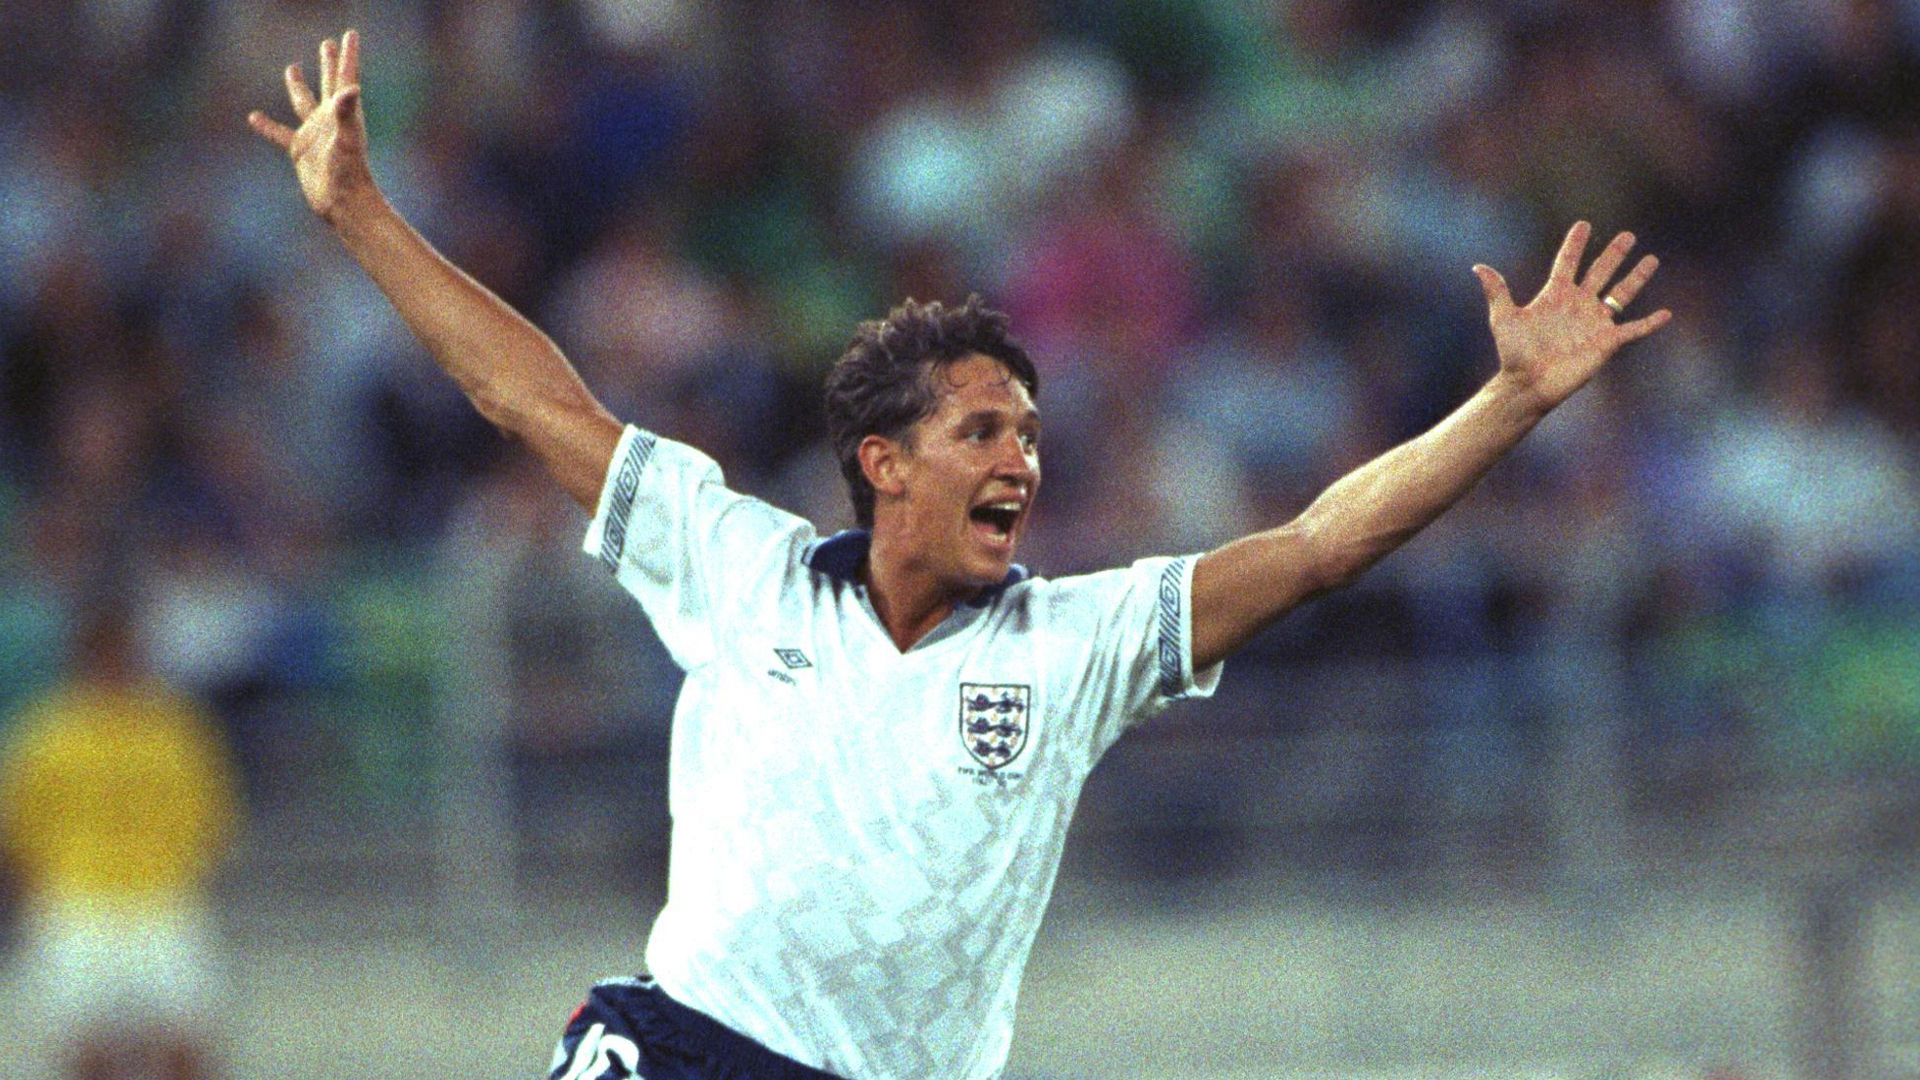 Why did Gary Lineker 'sh*t' on the pitch at World Cup 1990?